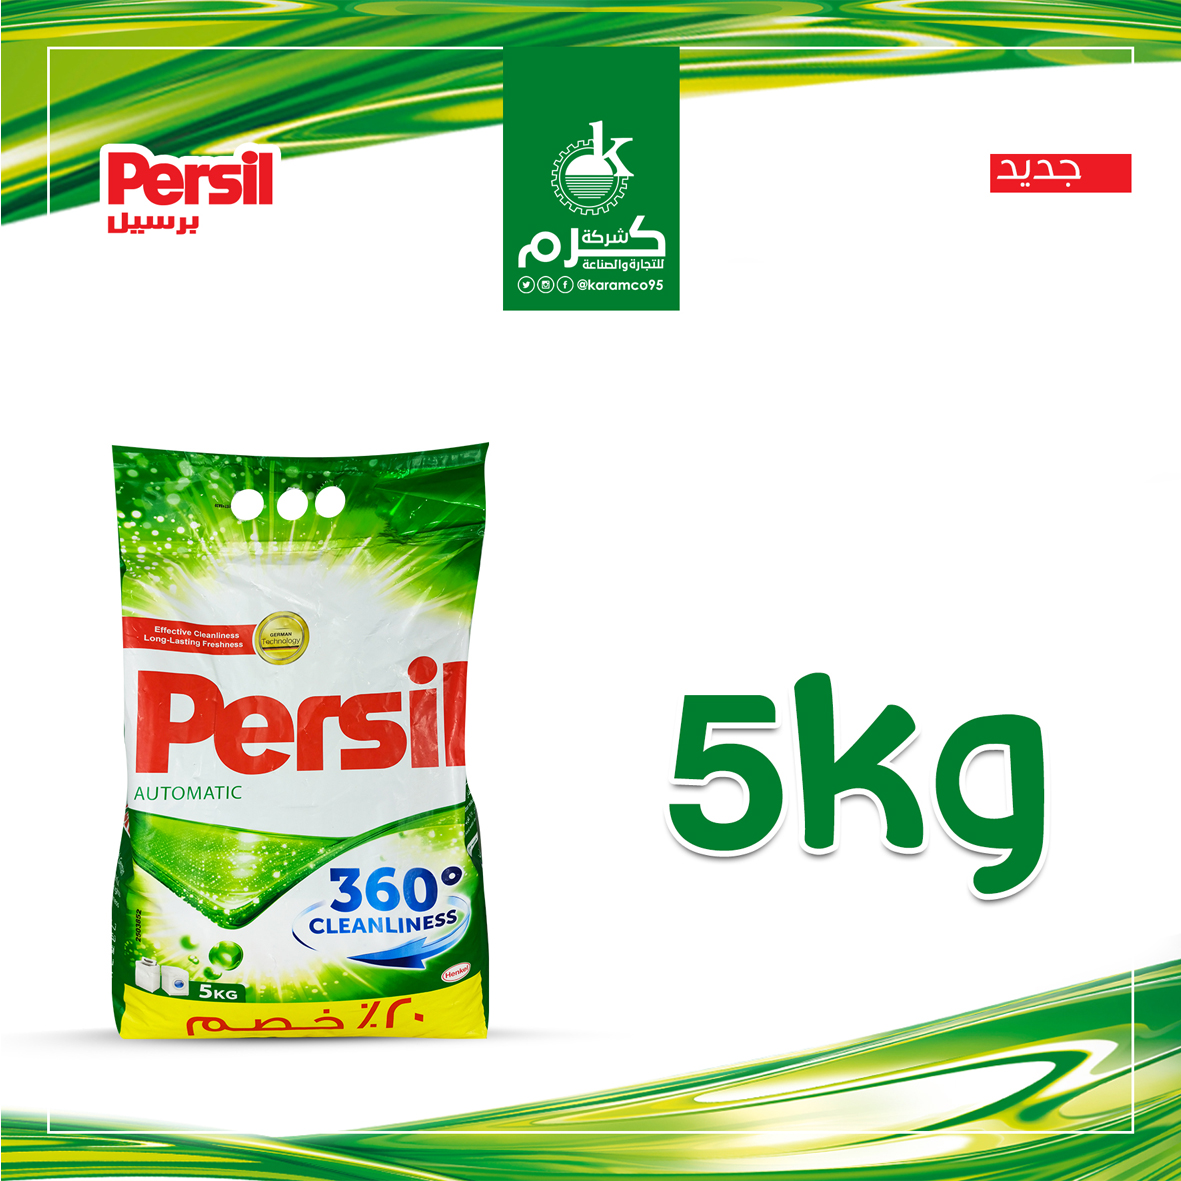 Persil Washing Powder 5 Kg